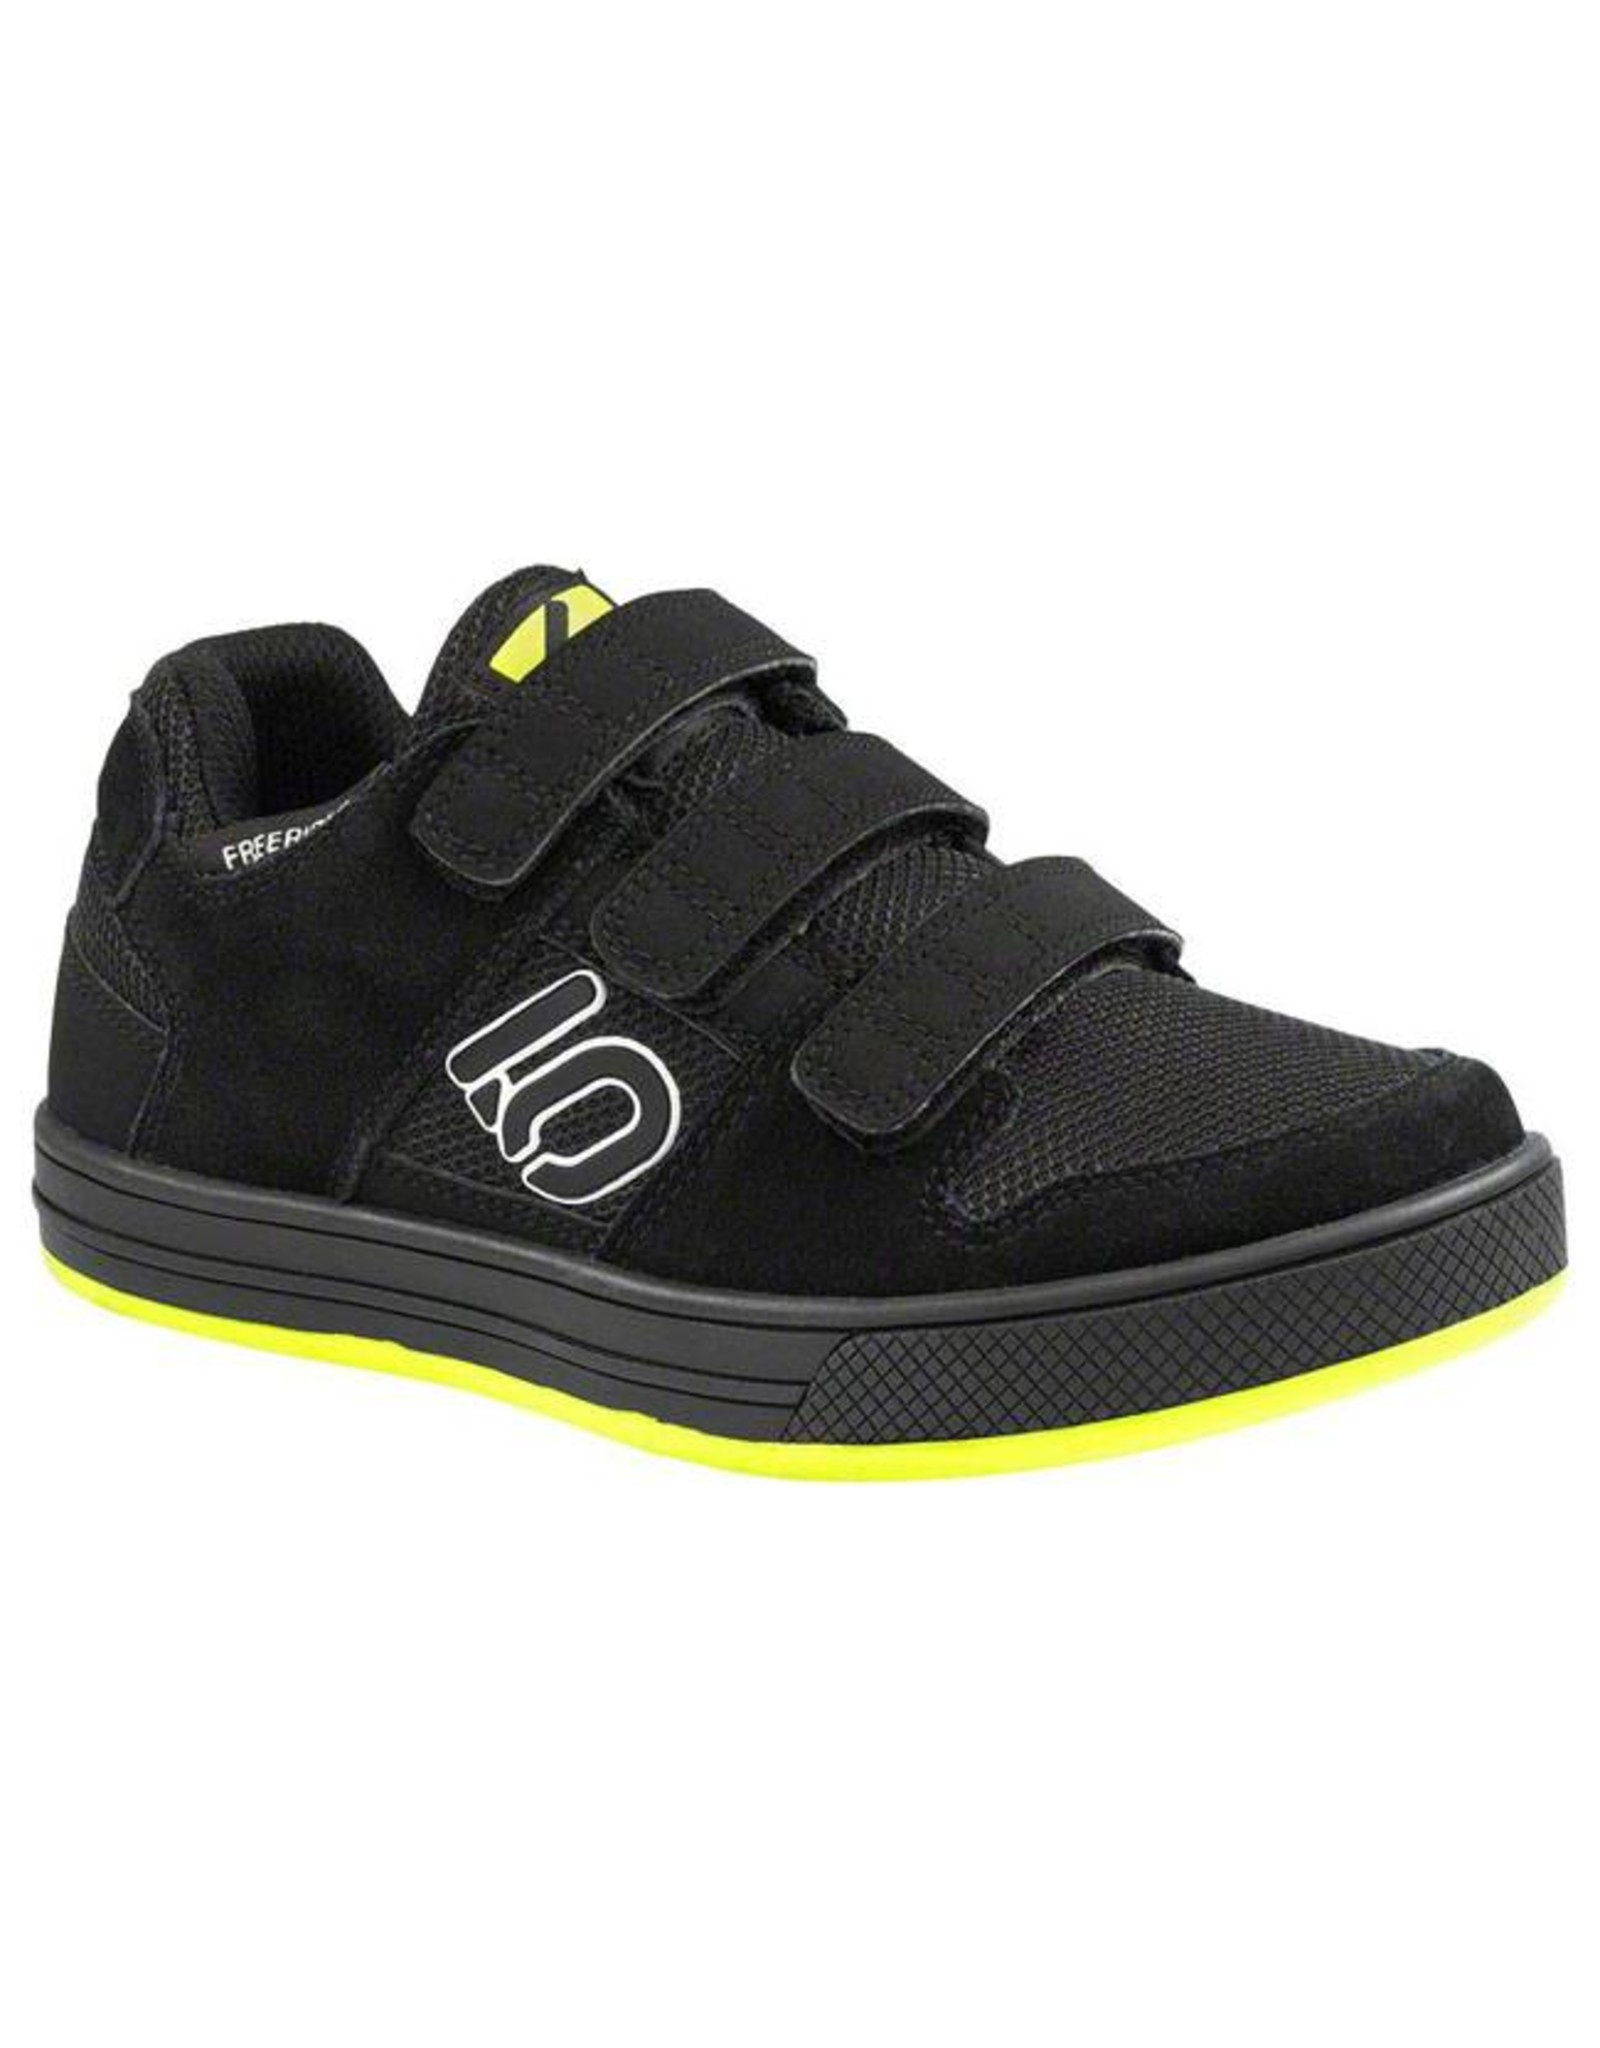 Five Ten Five Ten Freerider Kid's Flat Pedal Shoe: Black 3